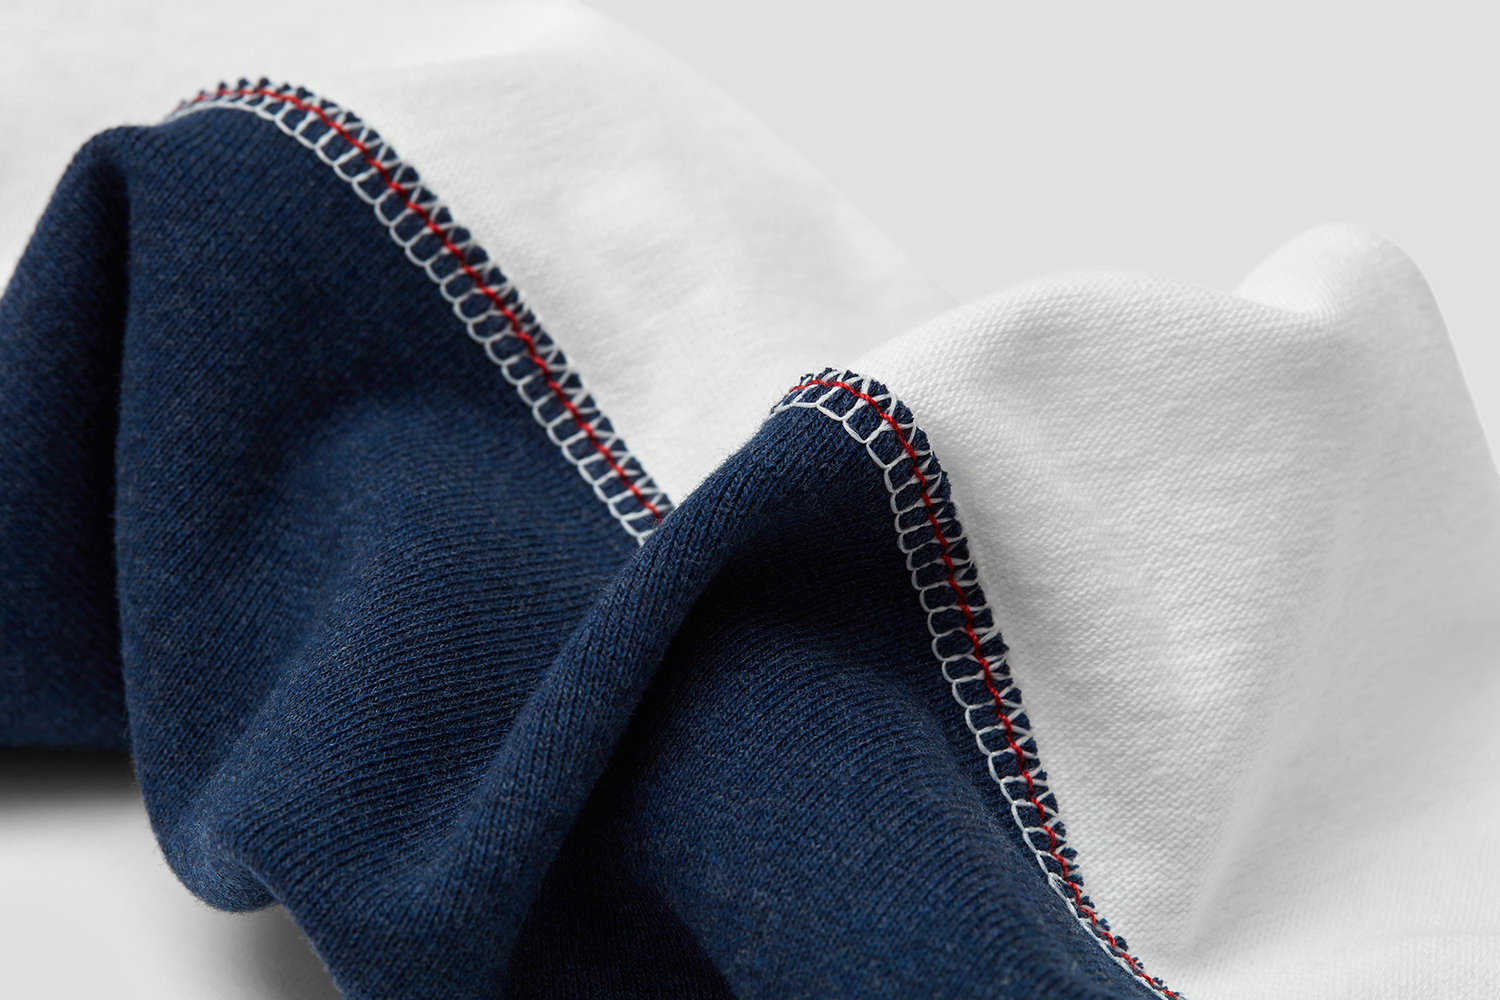 Internal Seam. Quality of construction is second to none.